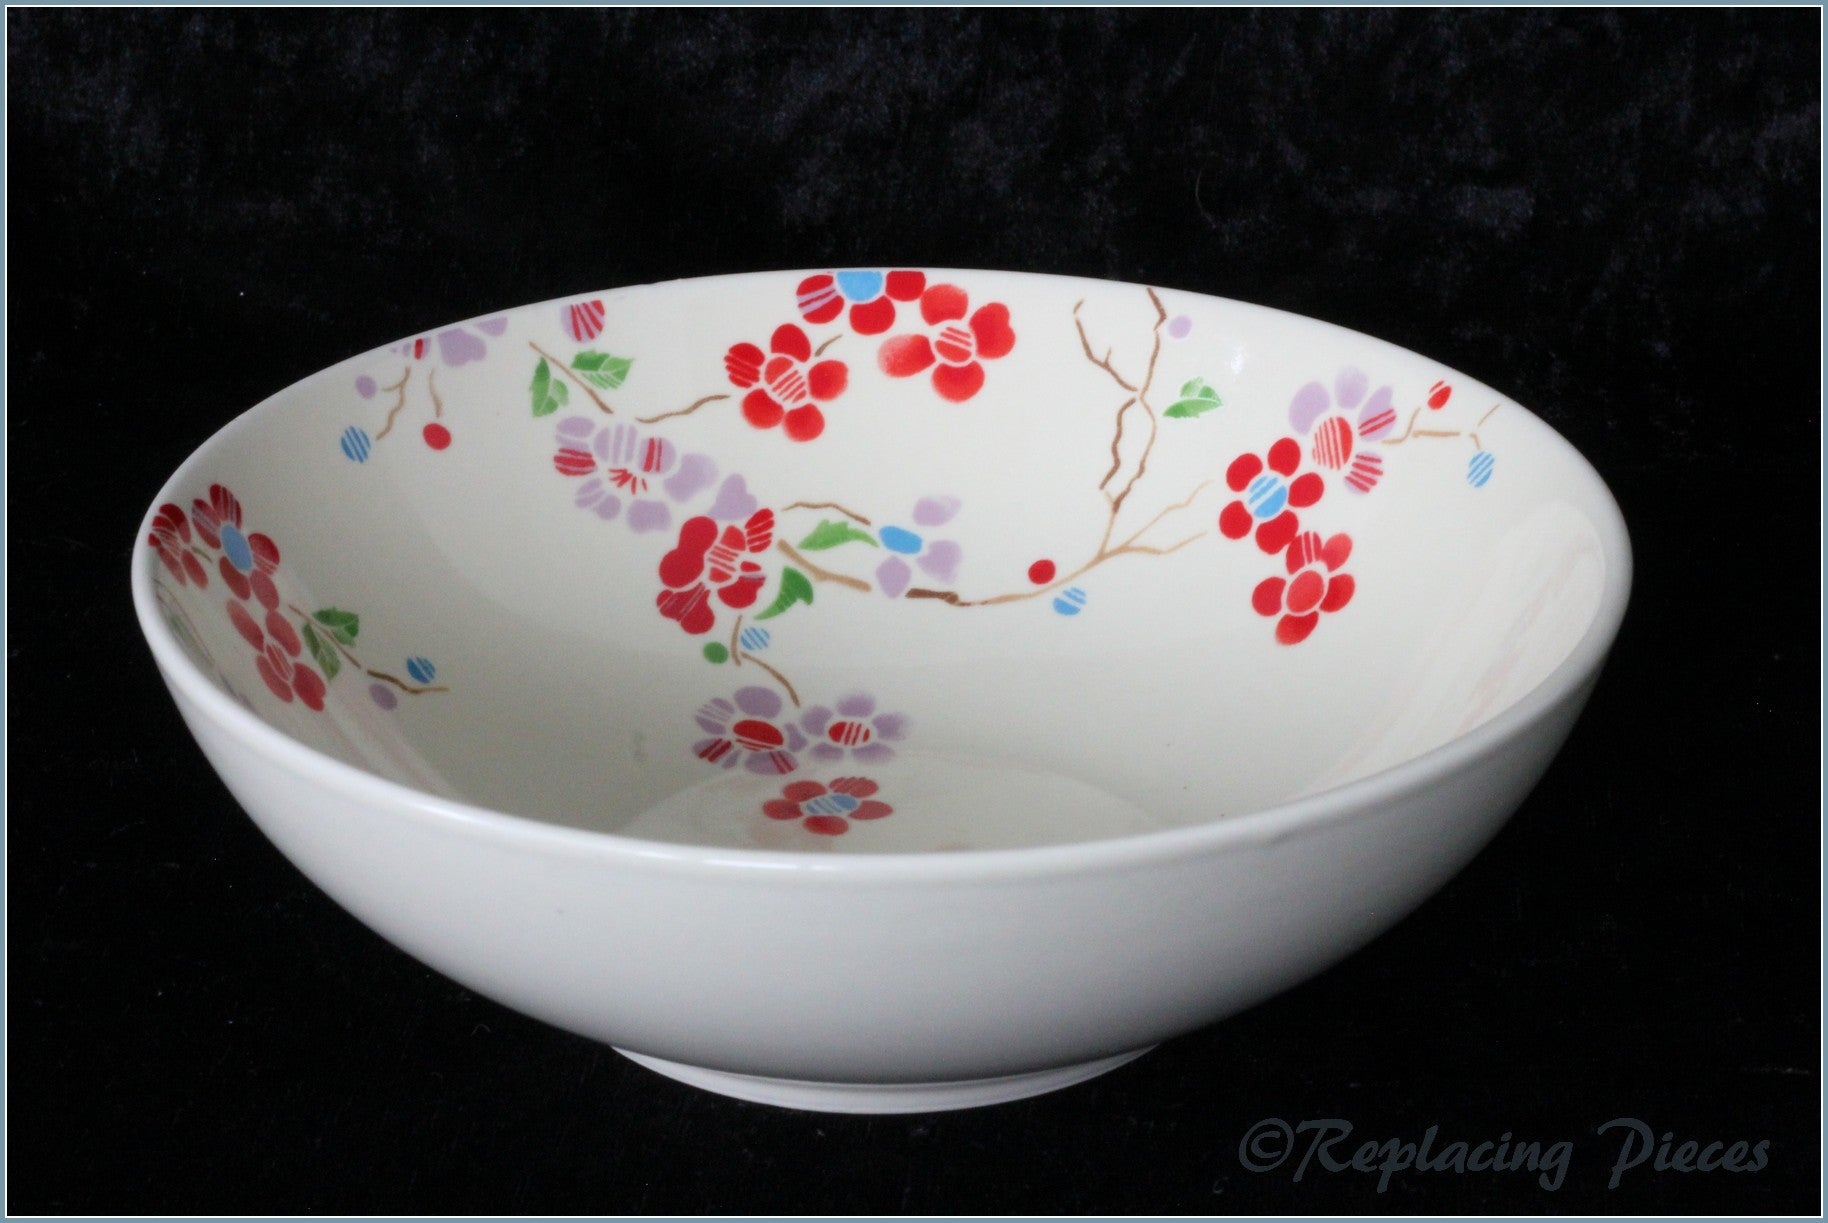 Queens - Sanderson (Maia Collection) - Cereal Bowl